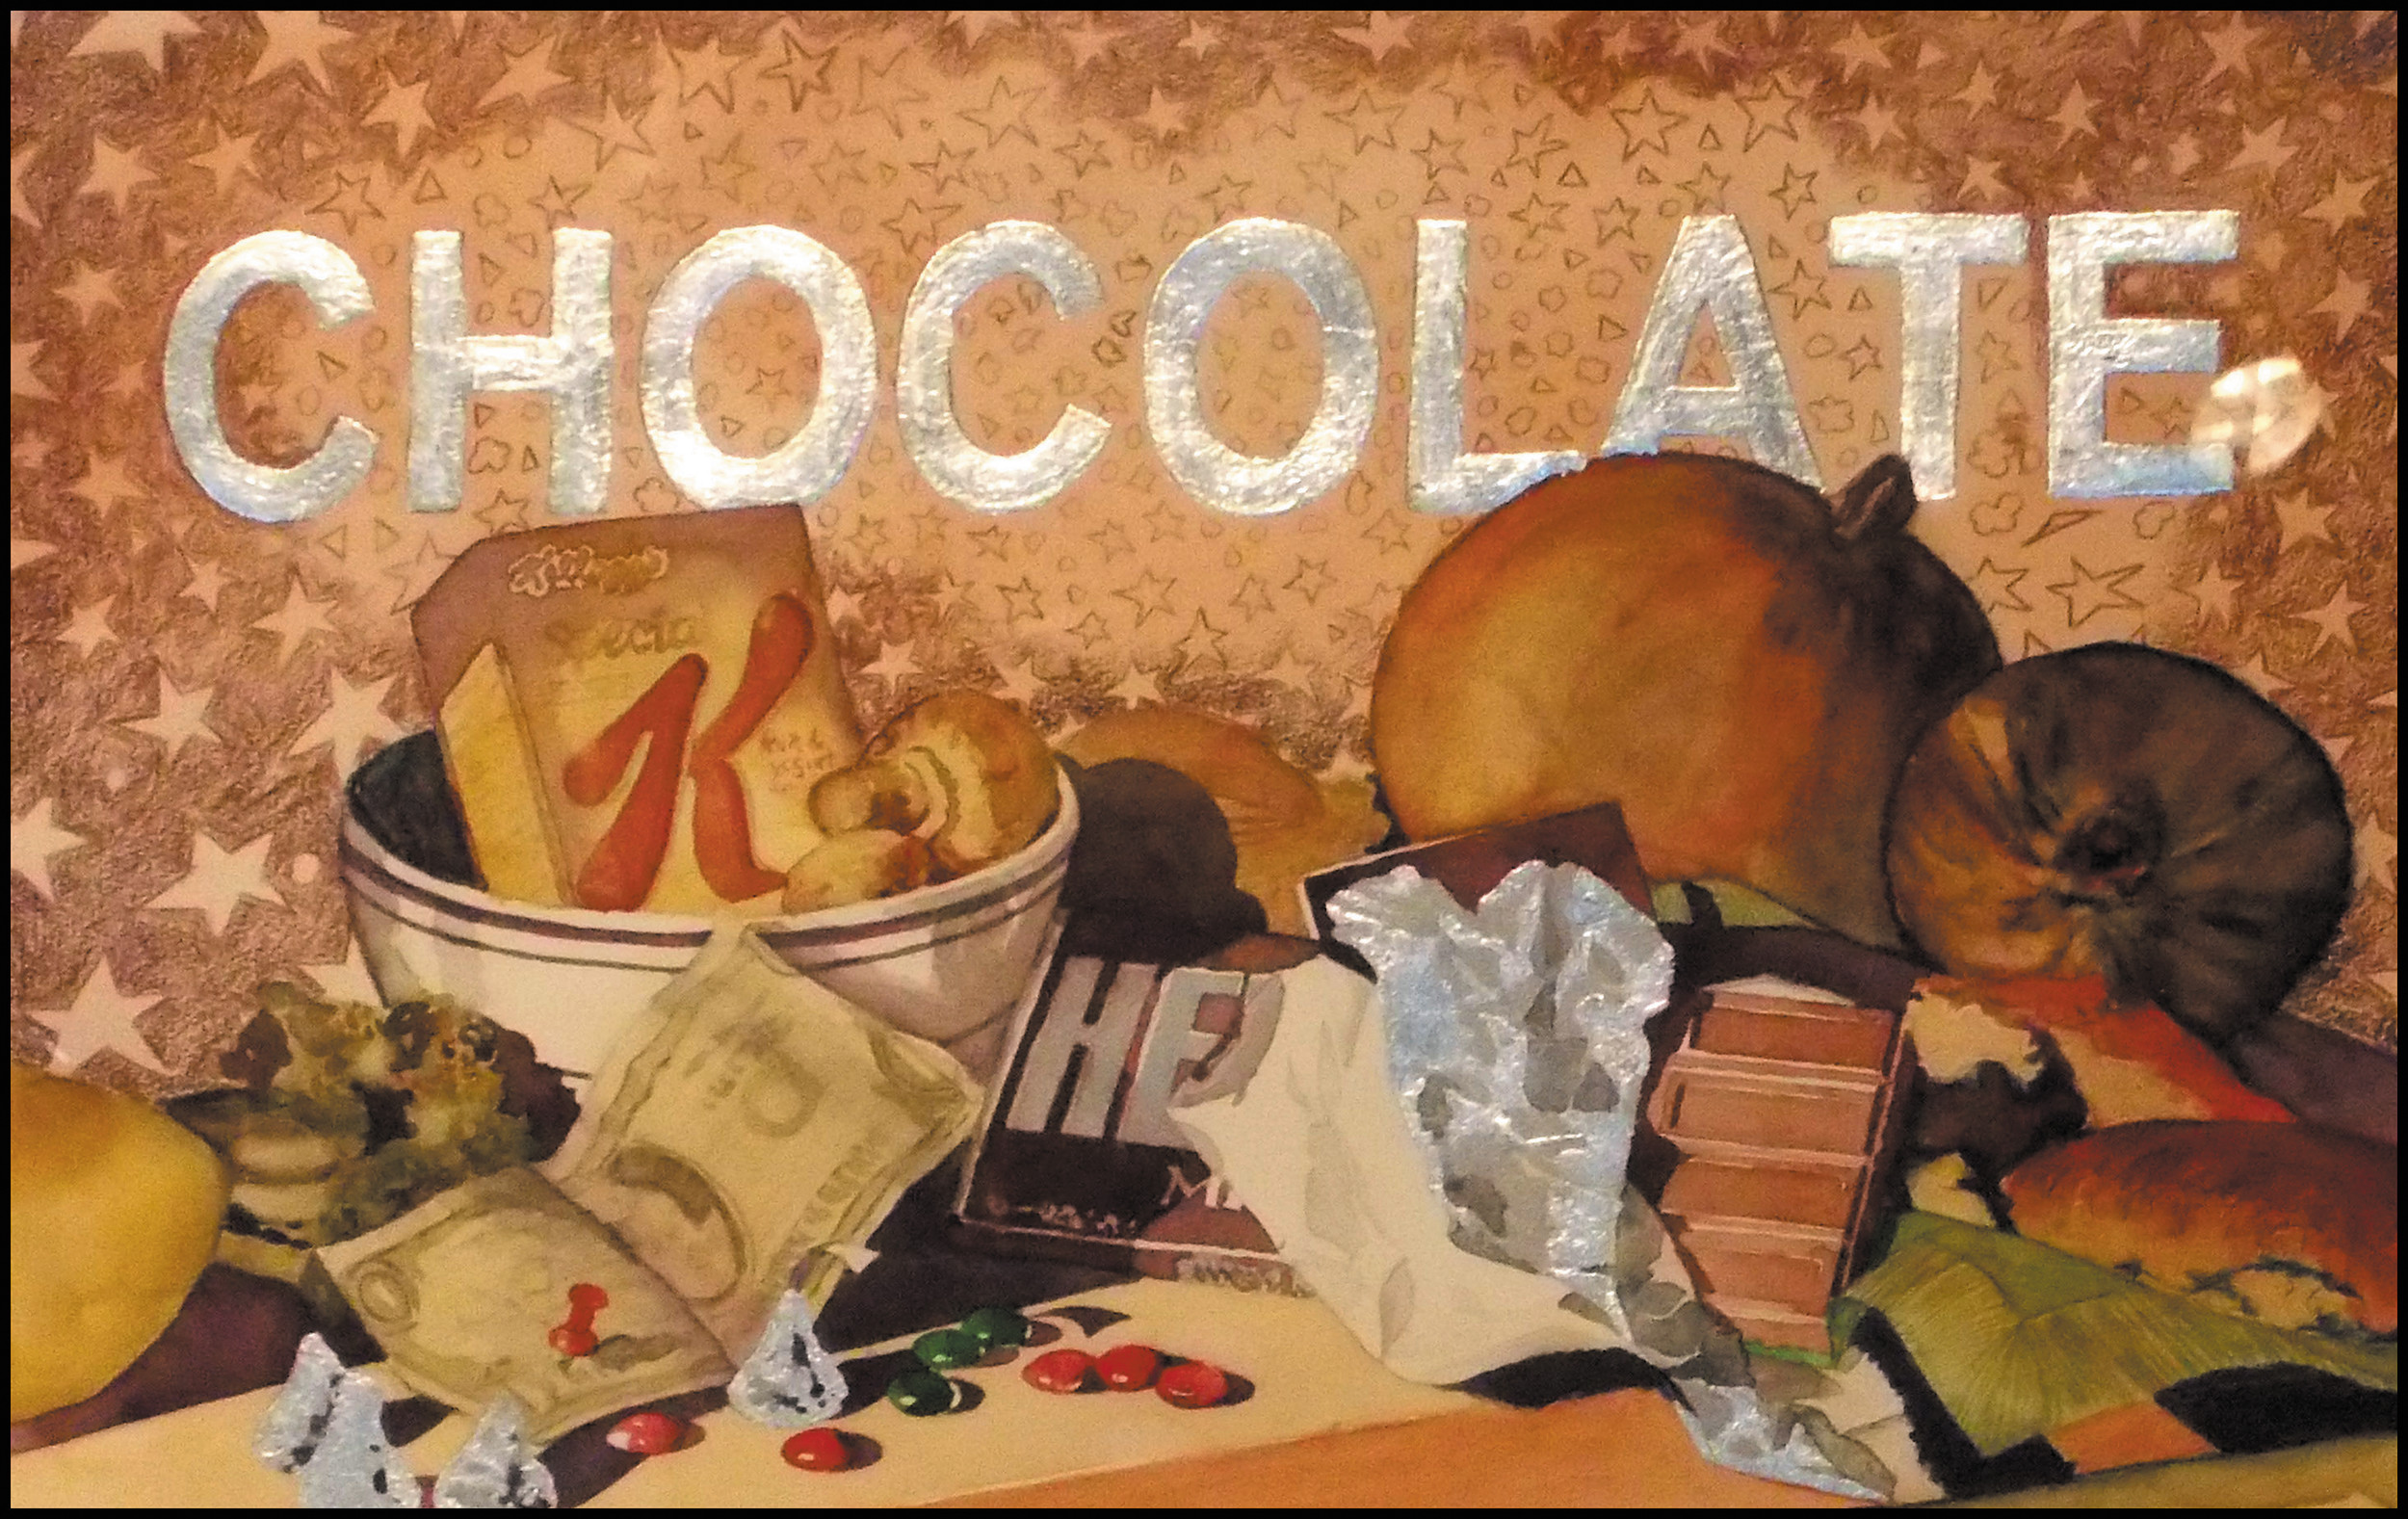 """The 6th Food Group"" by S. Williams was awarded First Place in the ""Art Unhinged"" exhibit at the Depot Art Gallery. The juror was Denver artist Jackie McFarland."